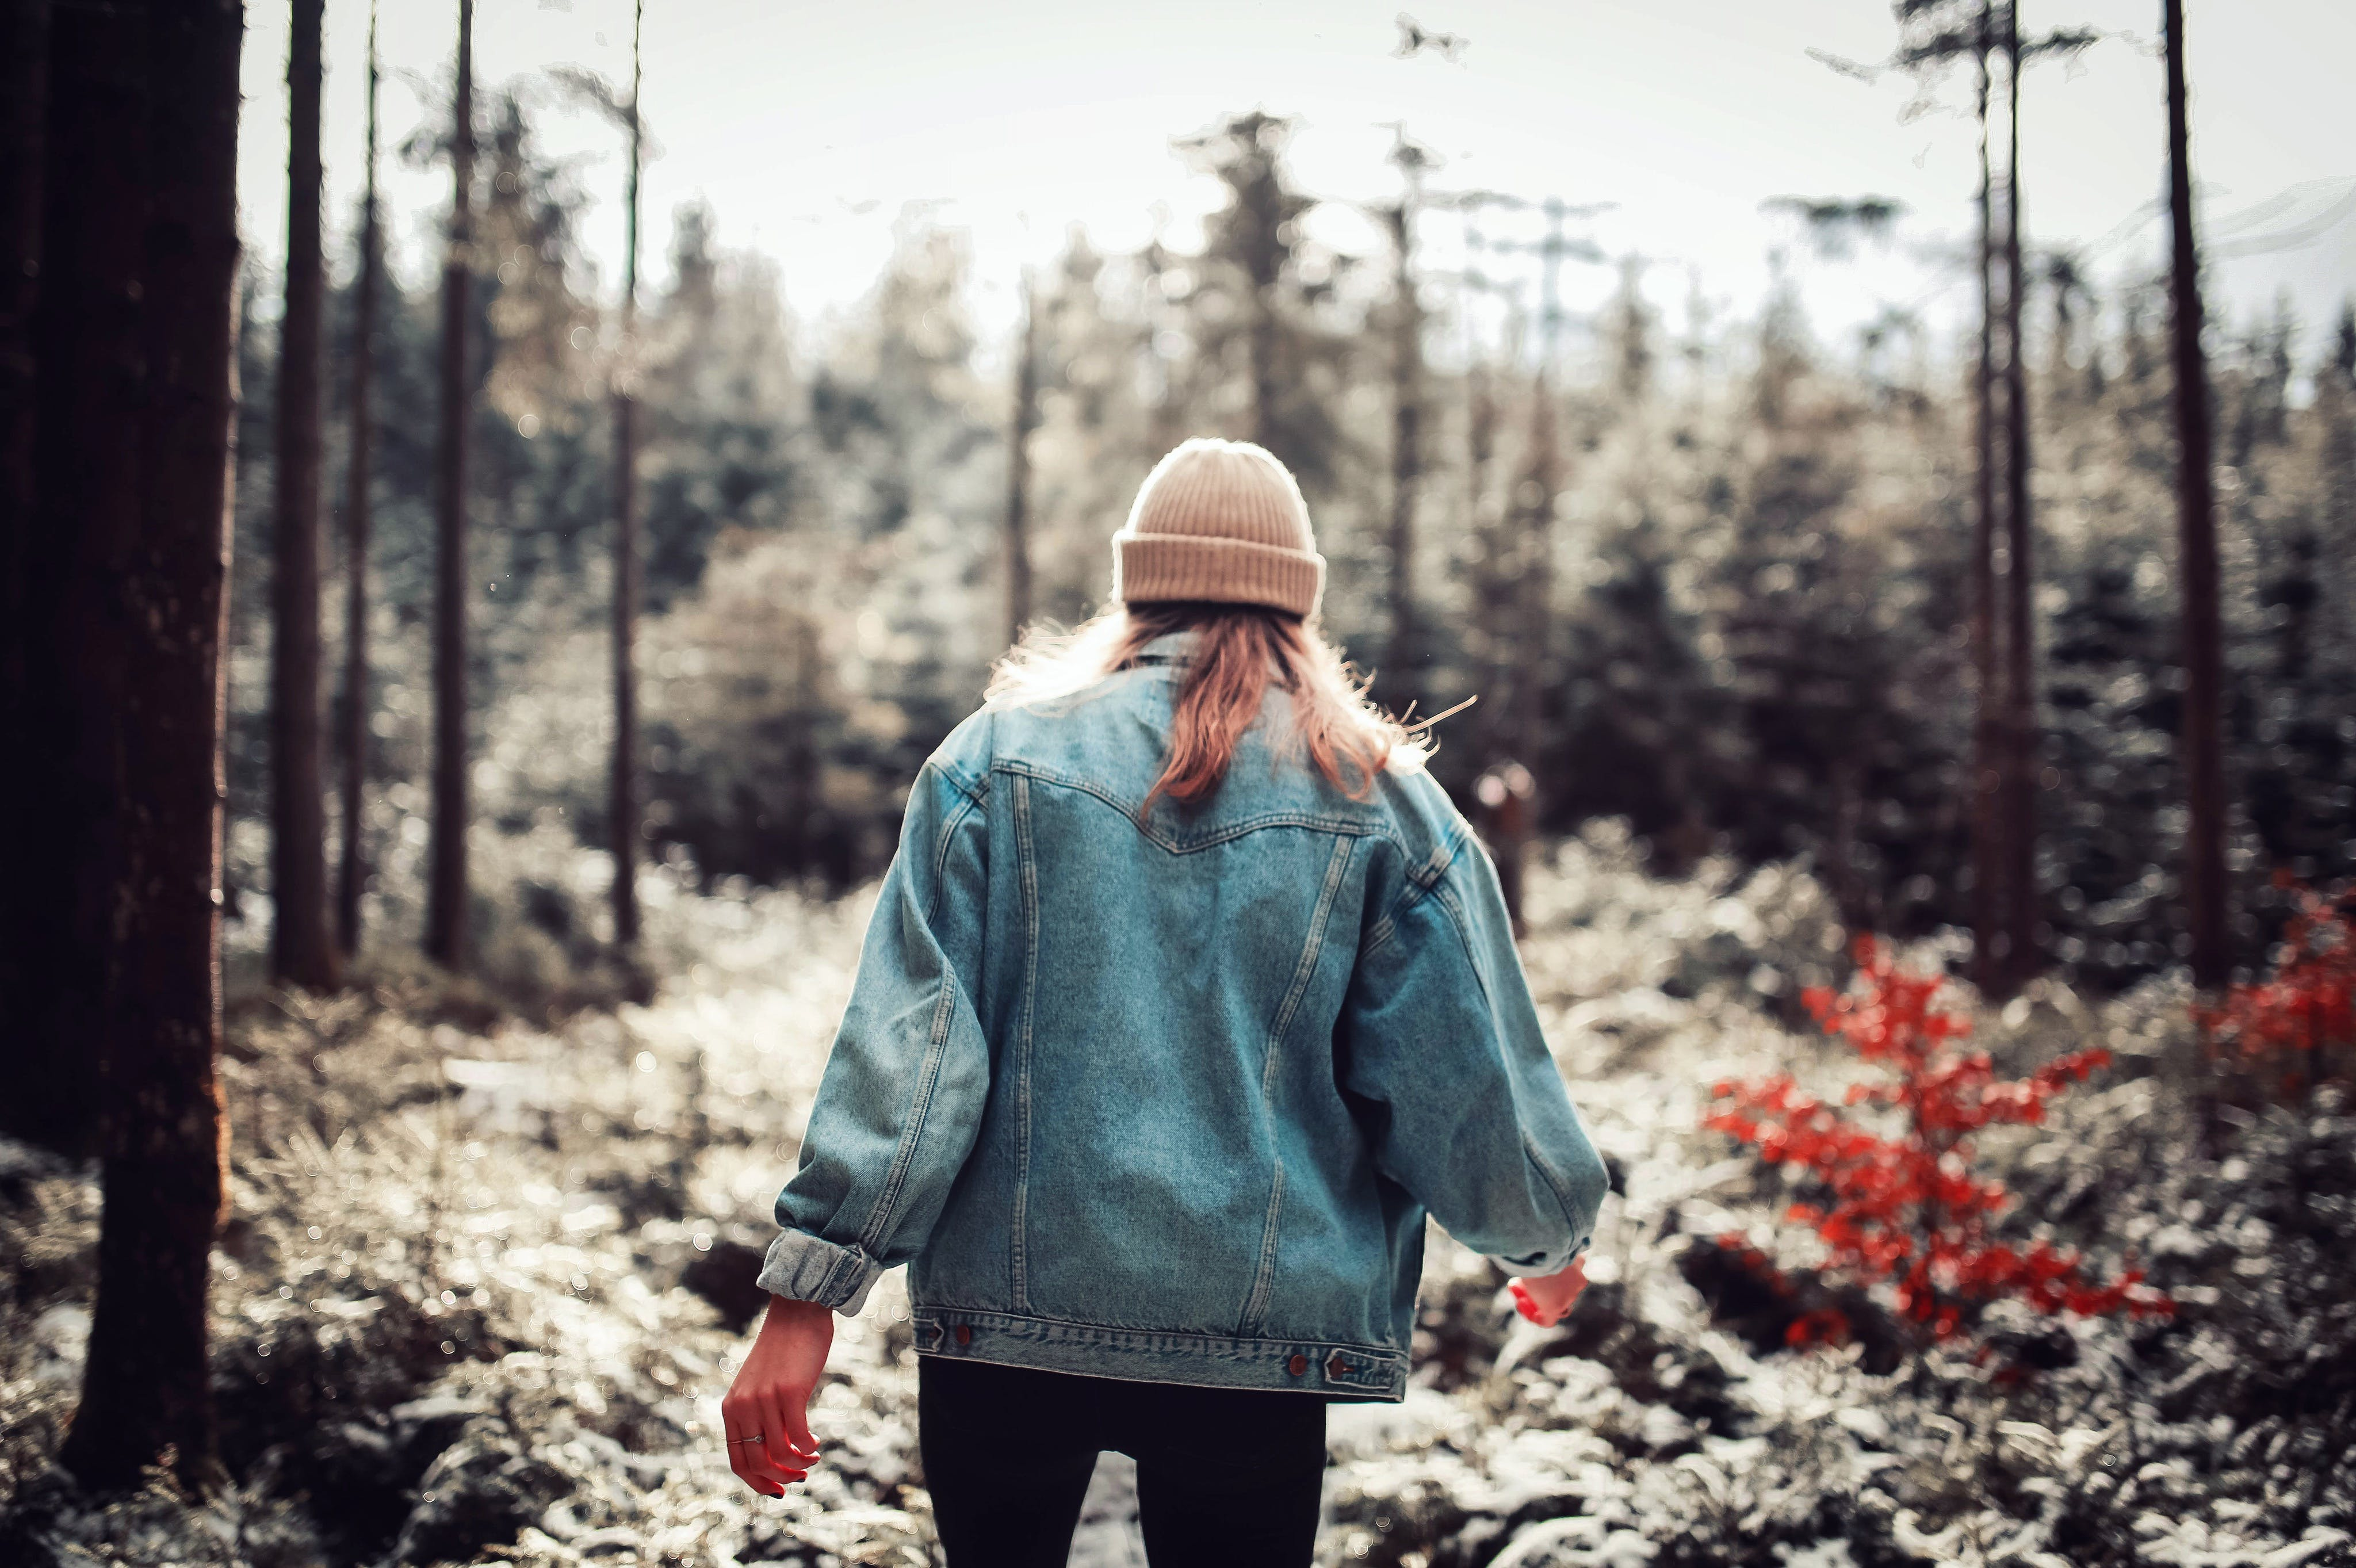 Woman Wearing Blue Denim Jacket and White Beanie Walking in the Forest